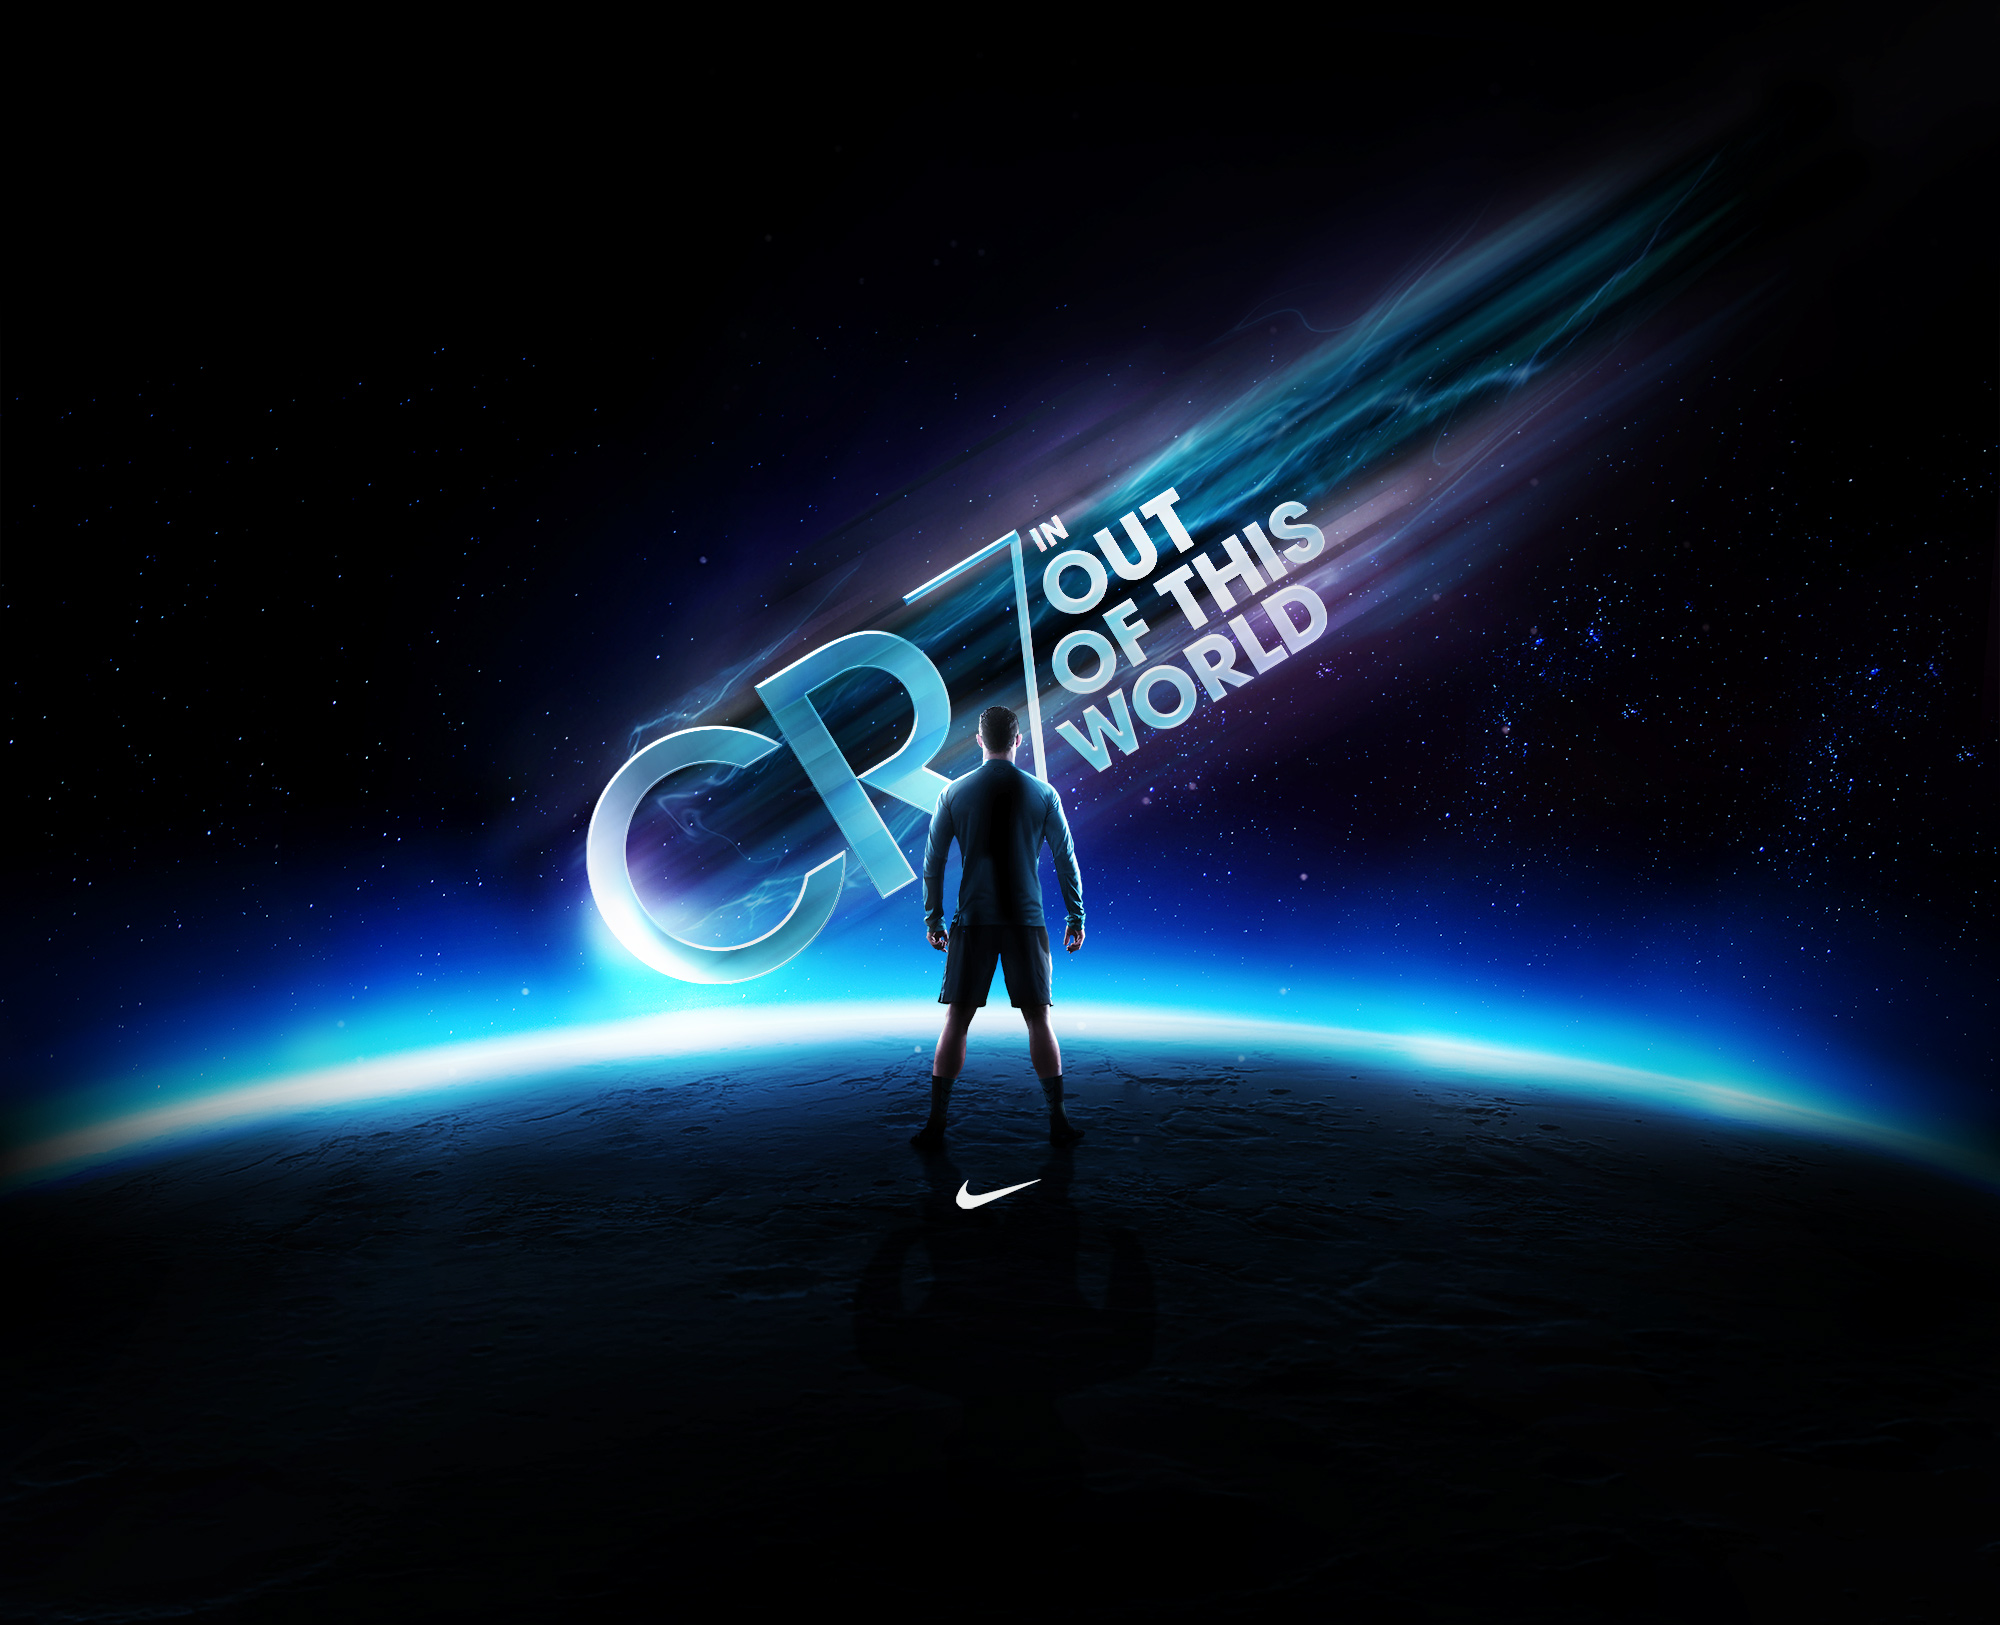 CR7in_Out_of_this_World_original